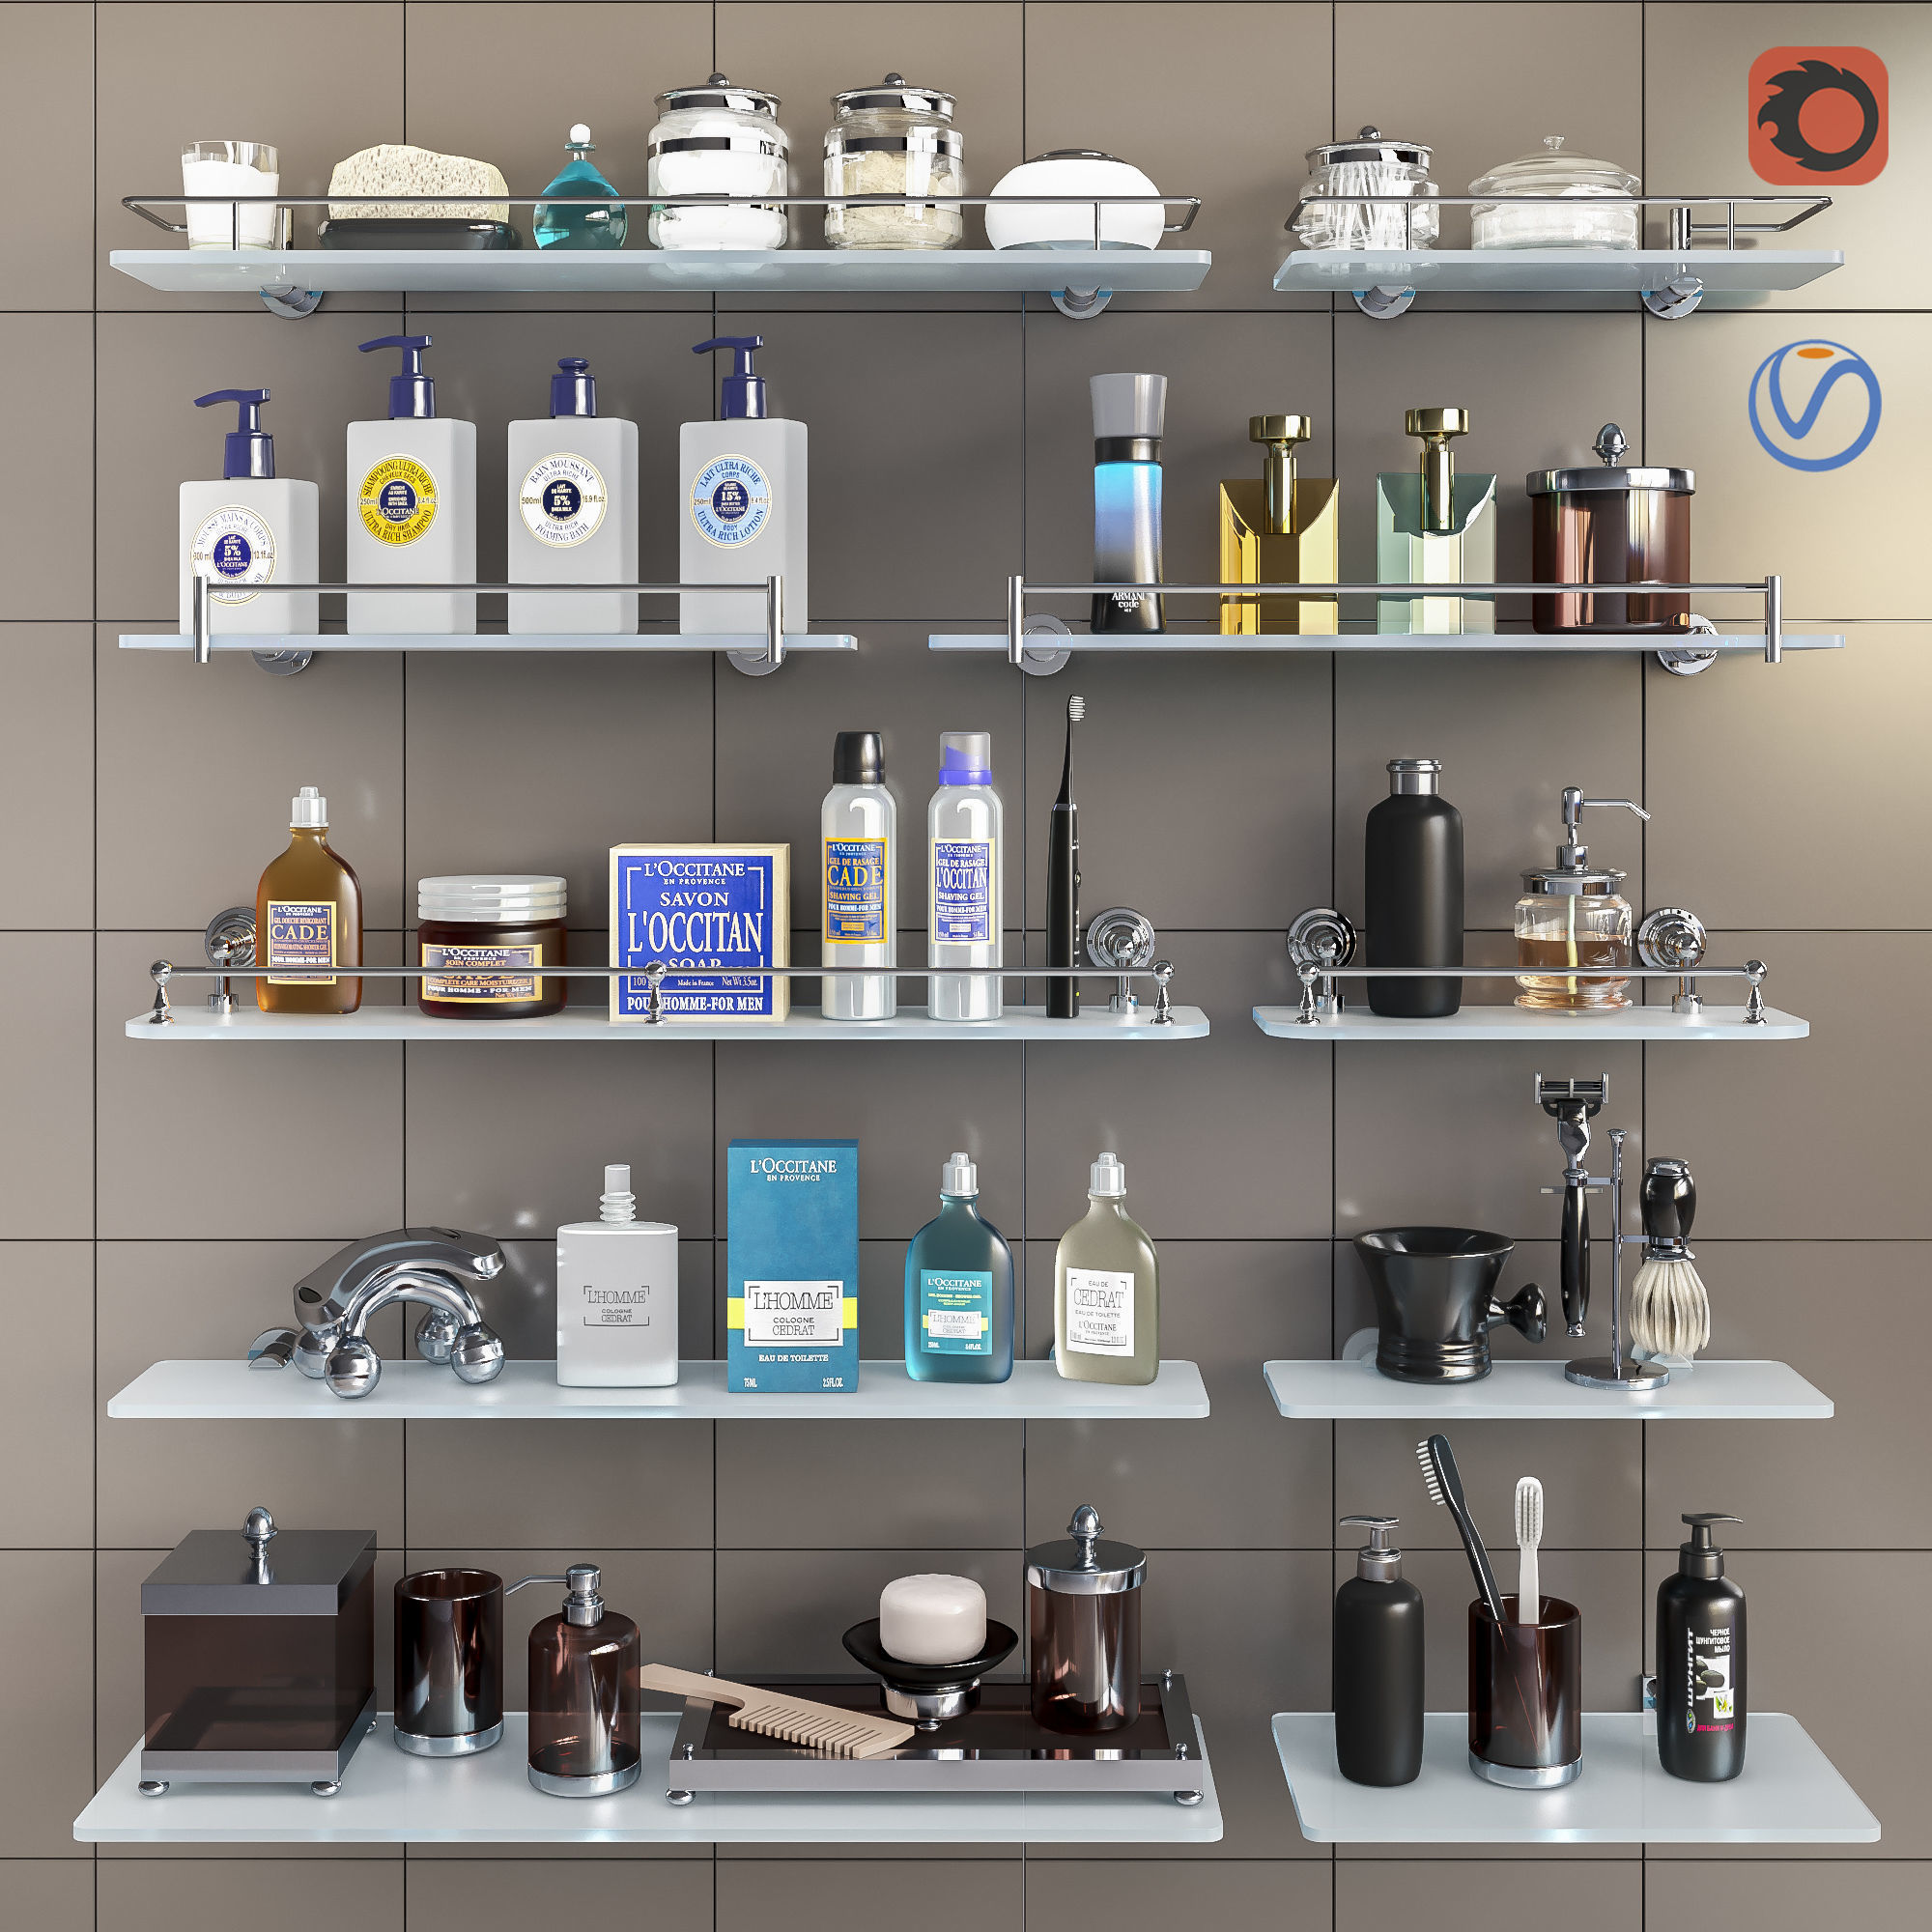 Set of cosmetics accessories and shelves for the bathroom set 3